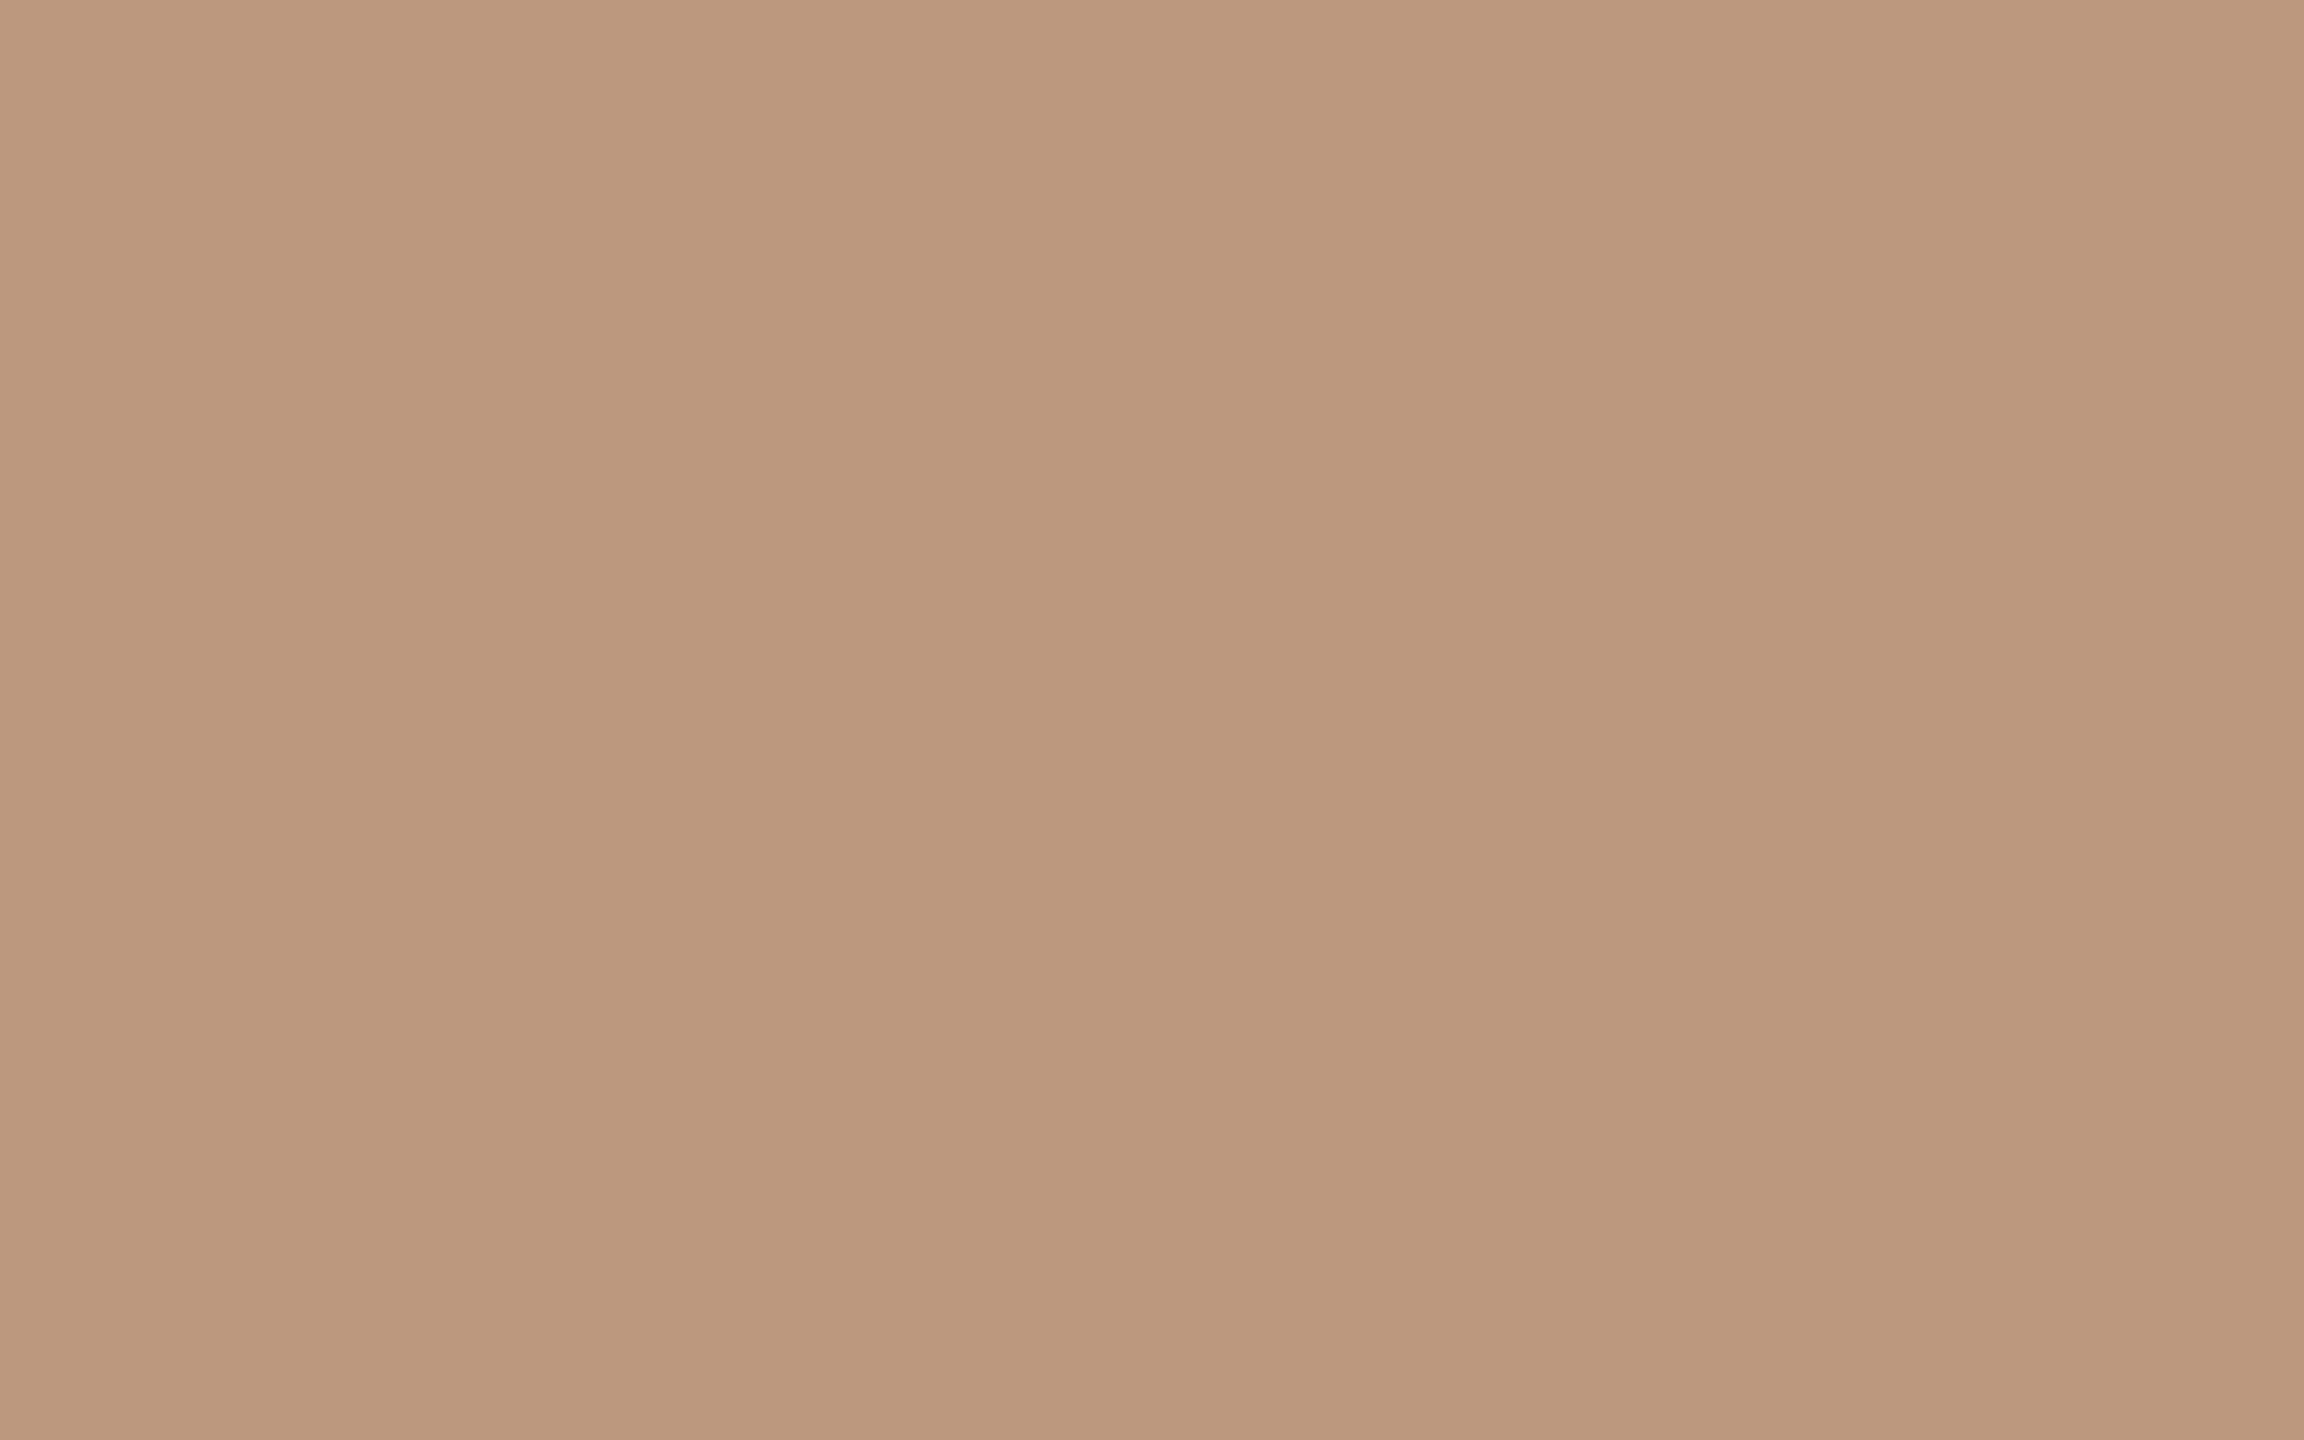 2304x1440 Pale Taupe Solid Color Background